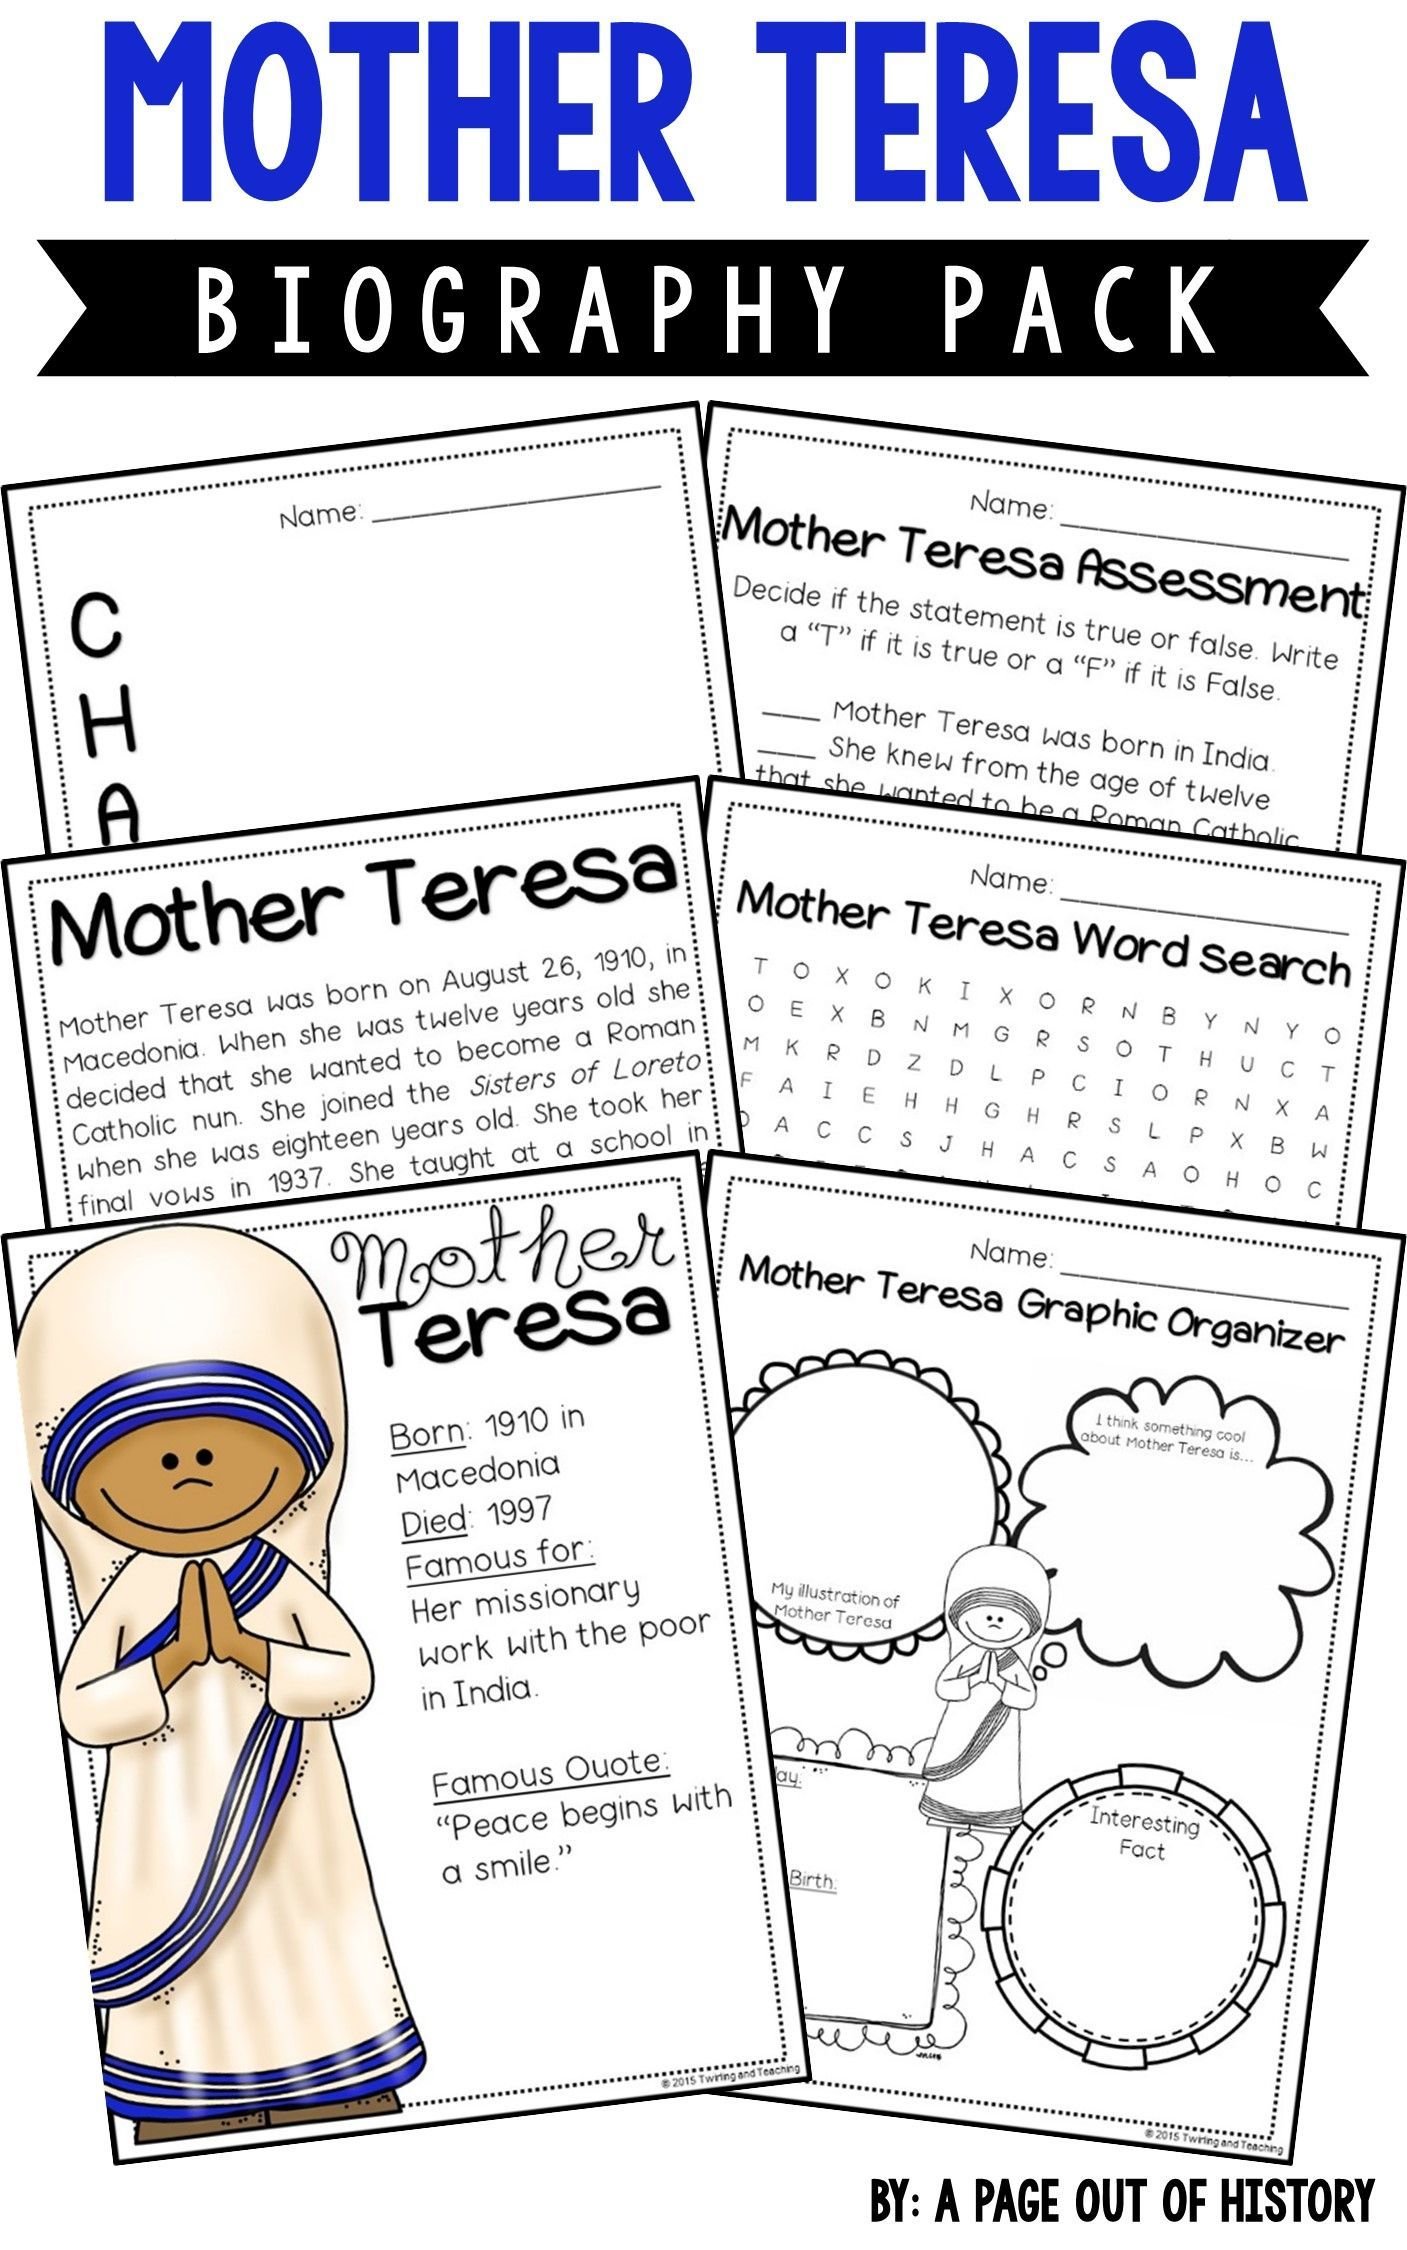 Mother Teresa Biography Pack Women S History